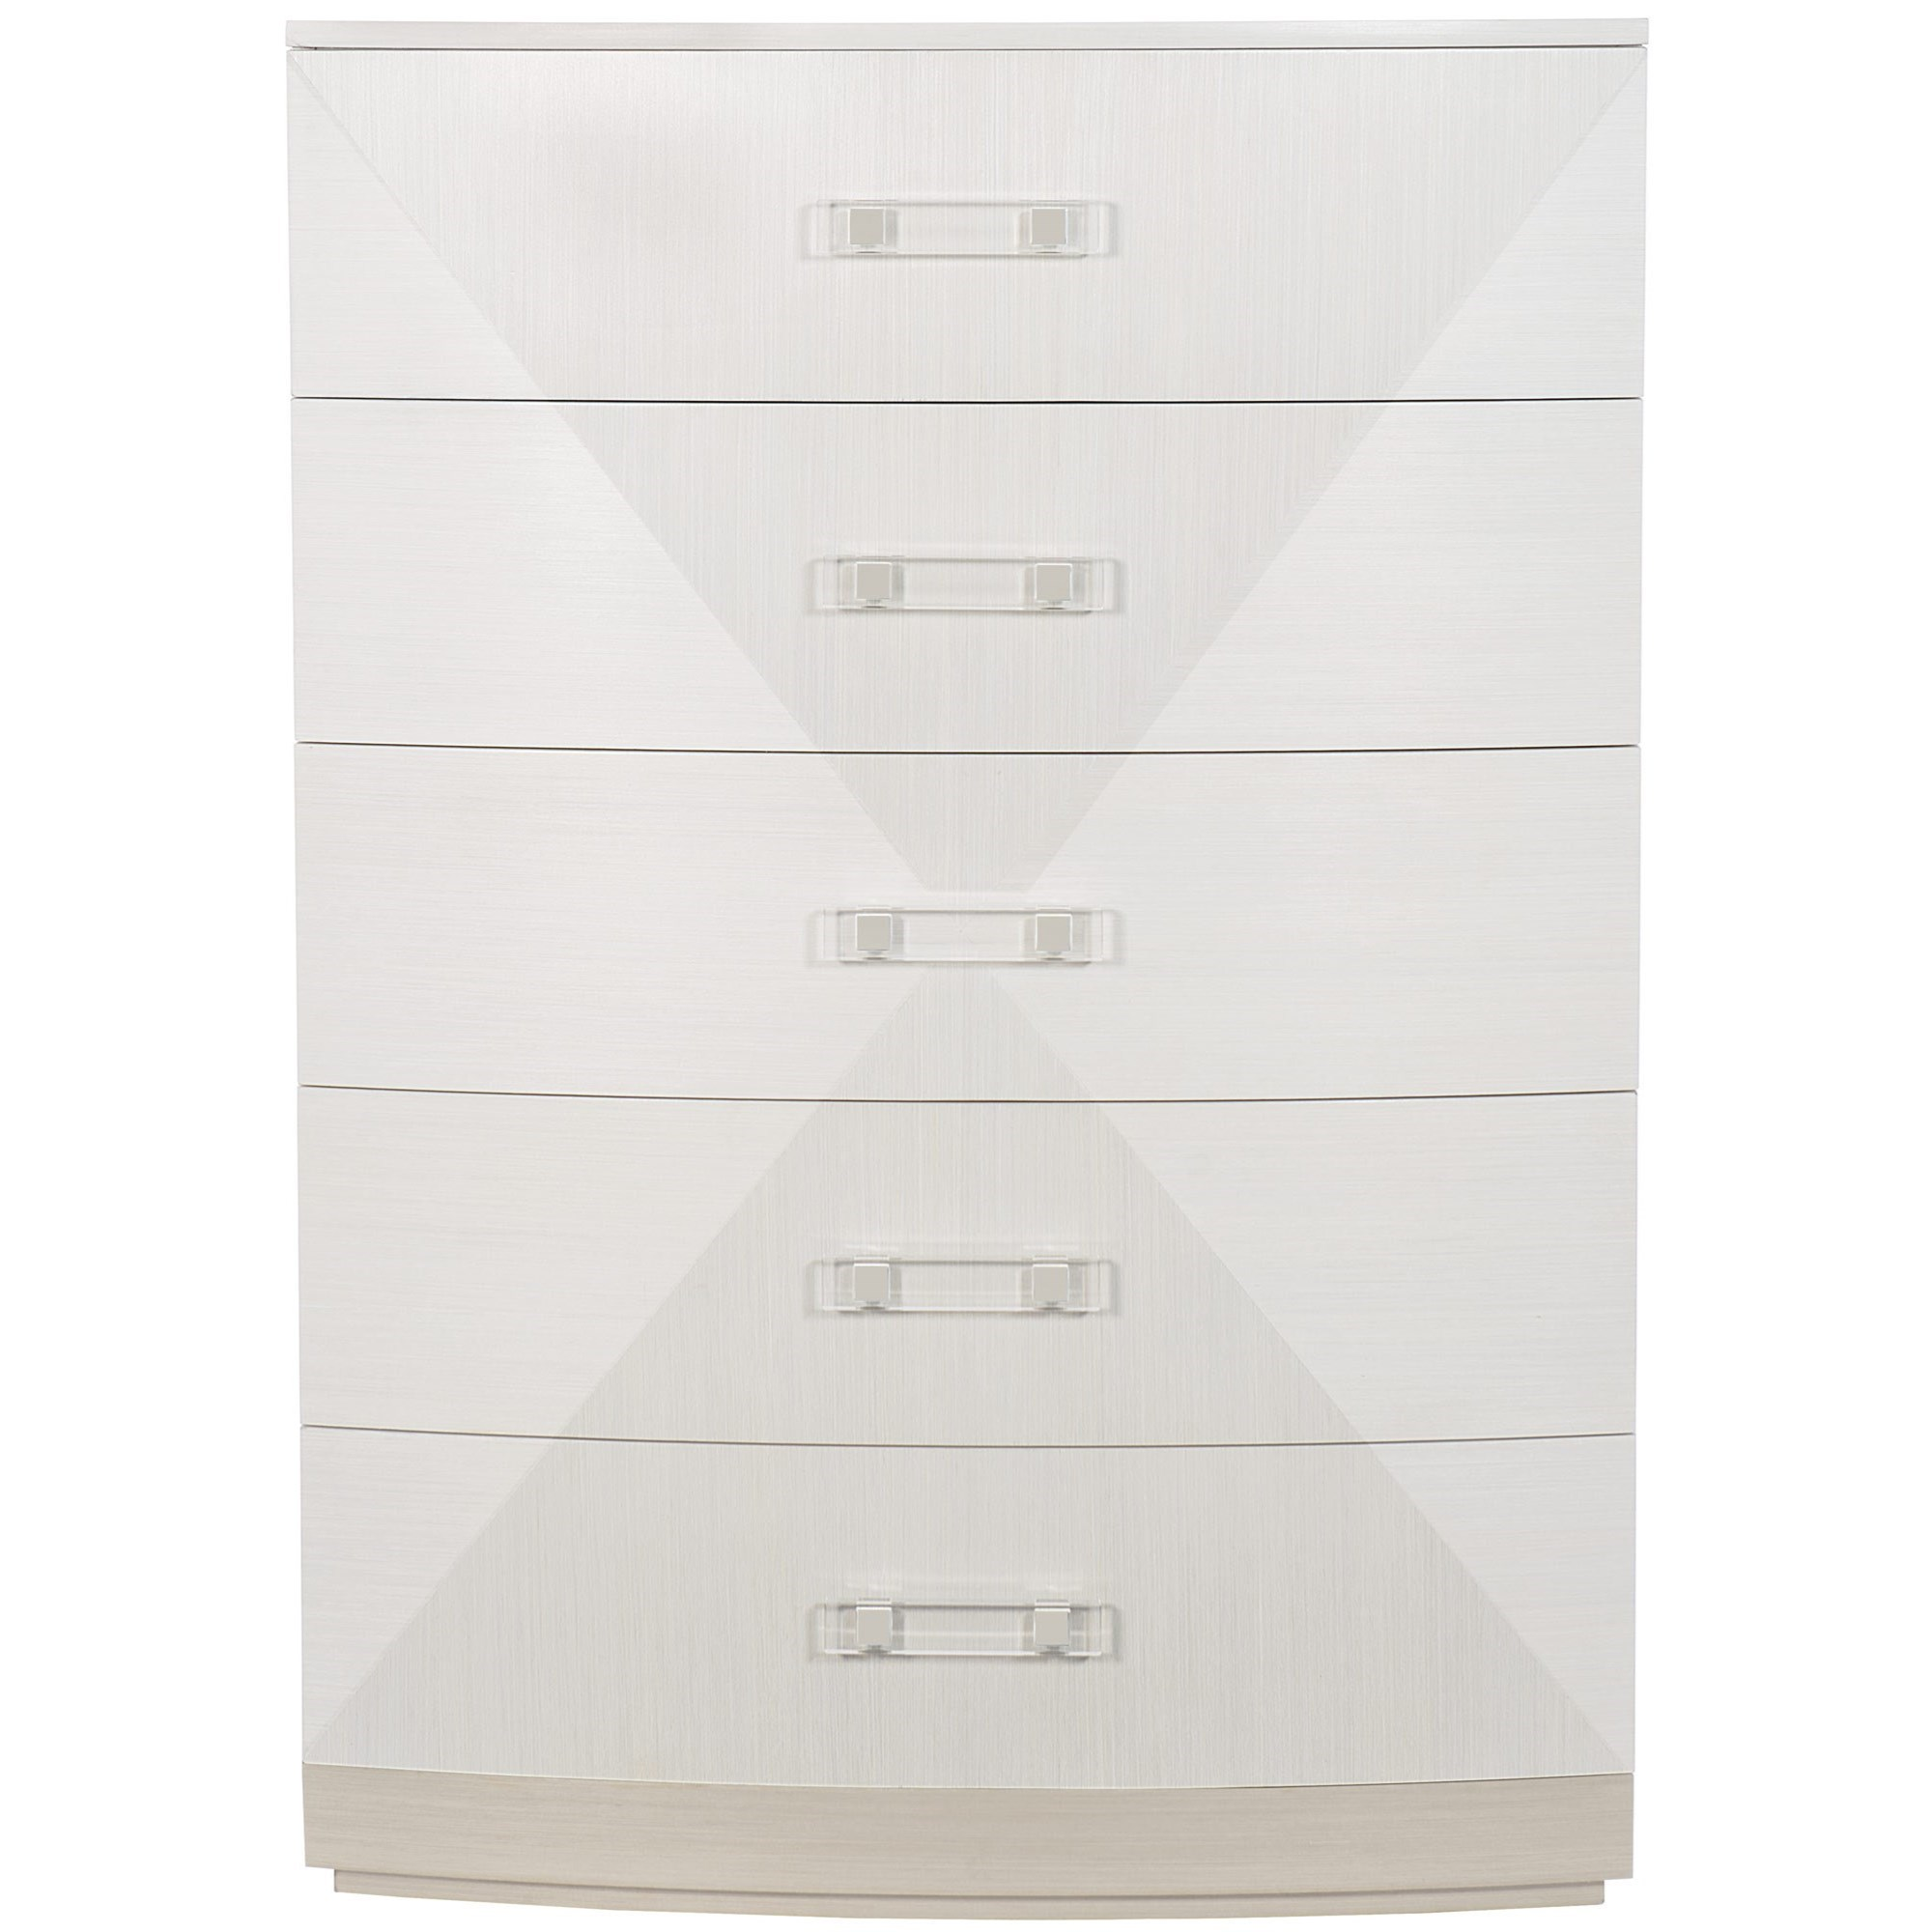 Axiom Chest of Drawers at Williams & Kay